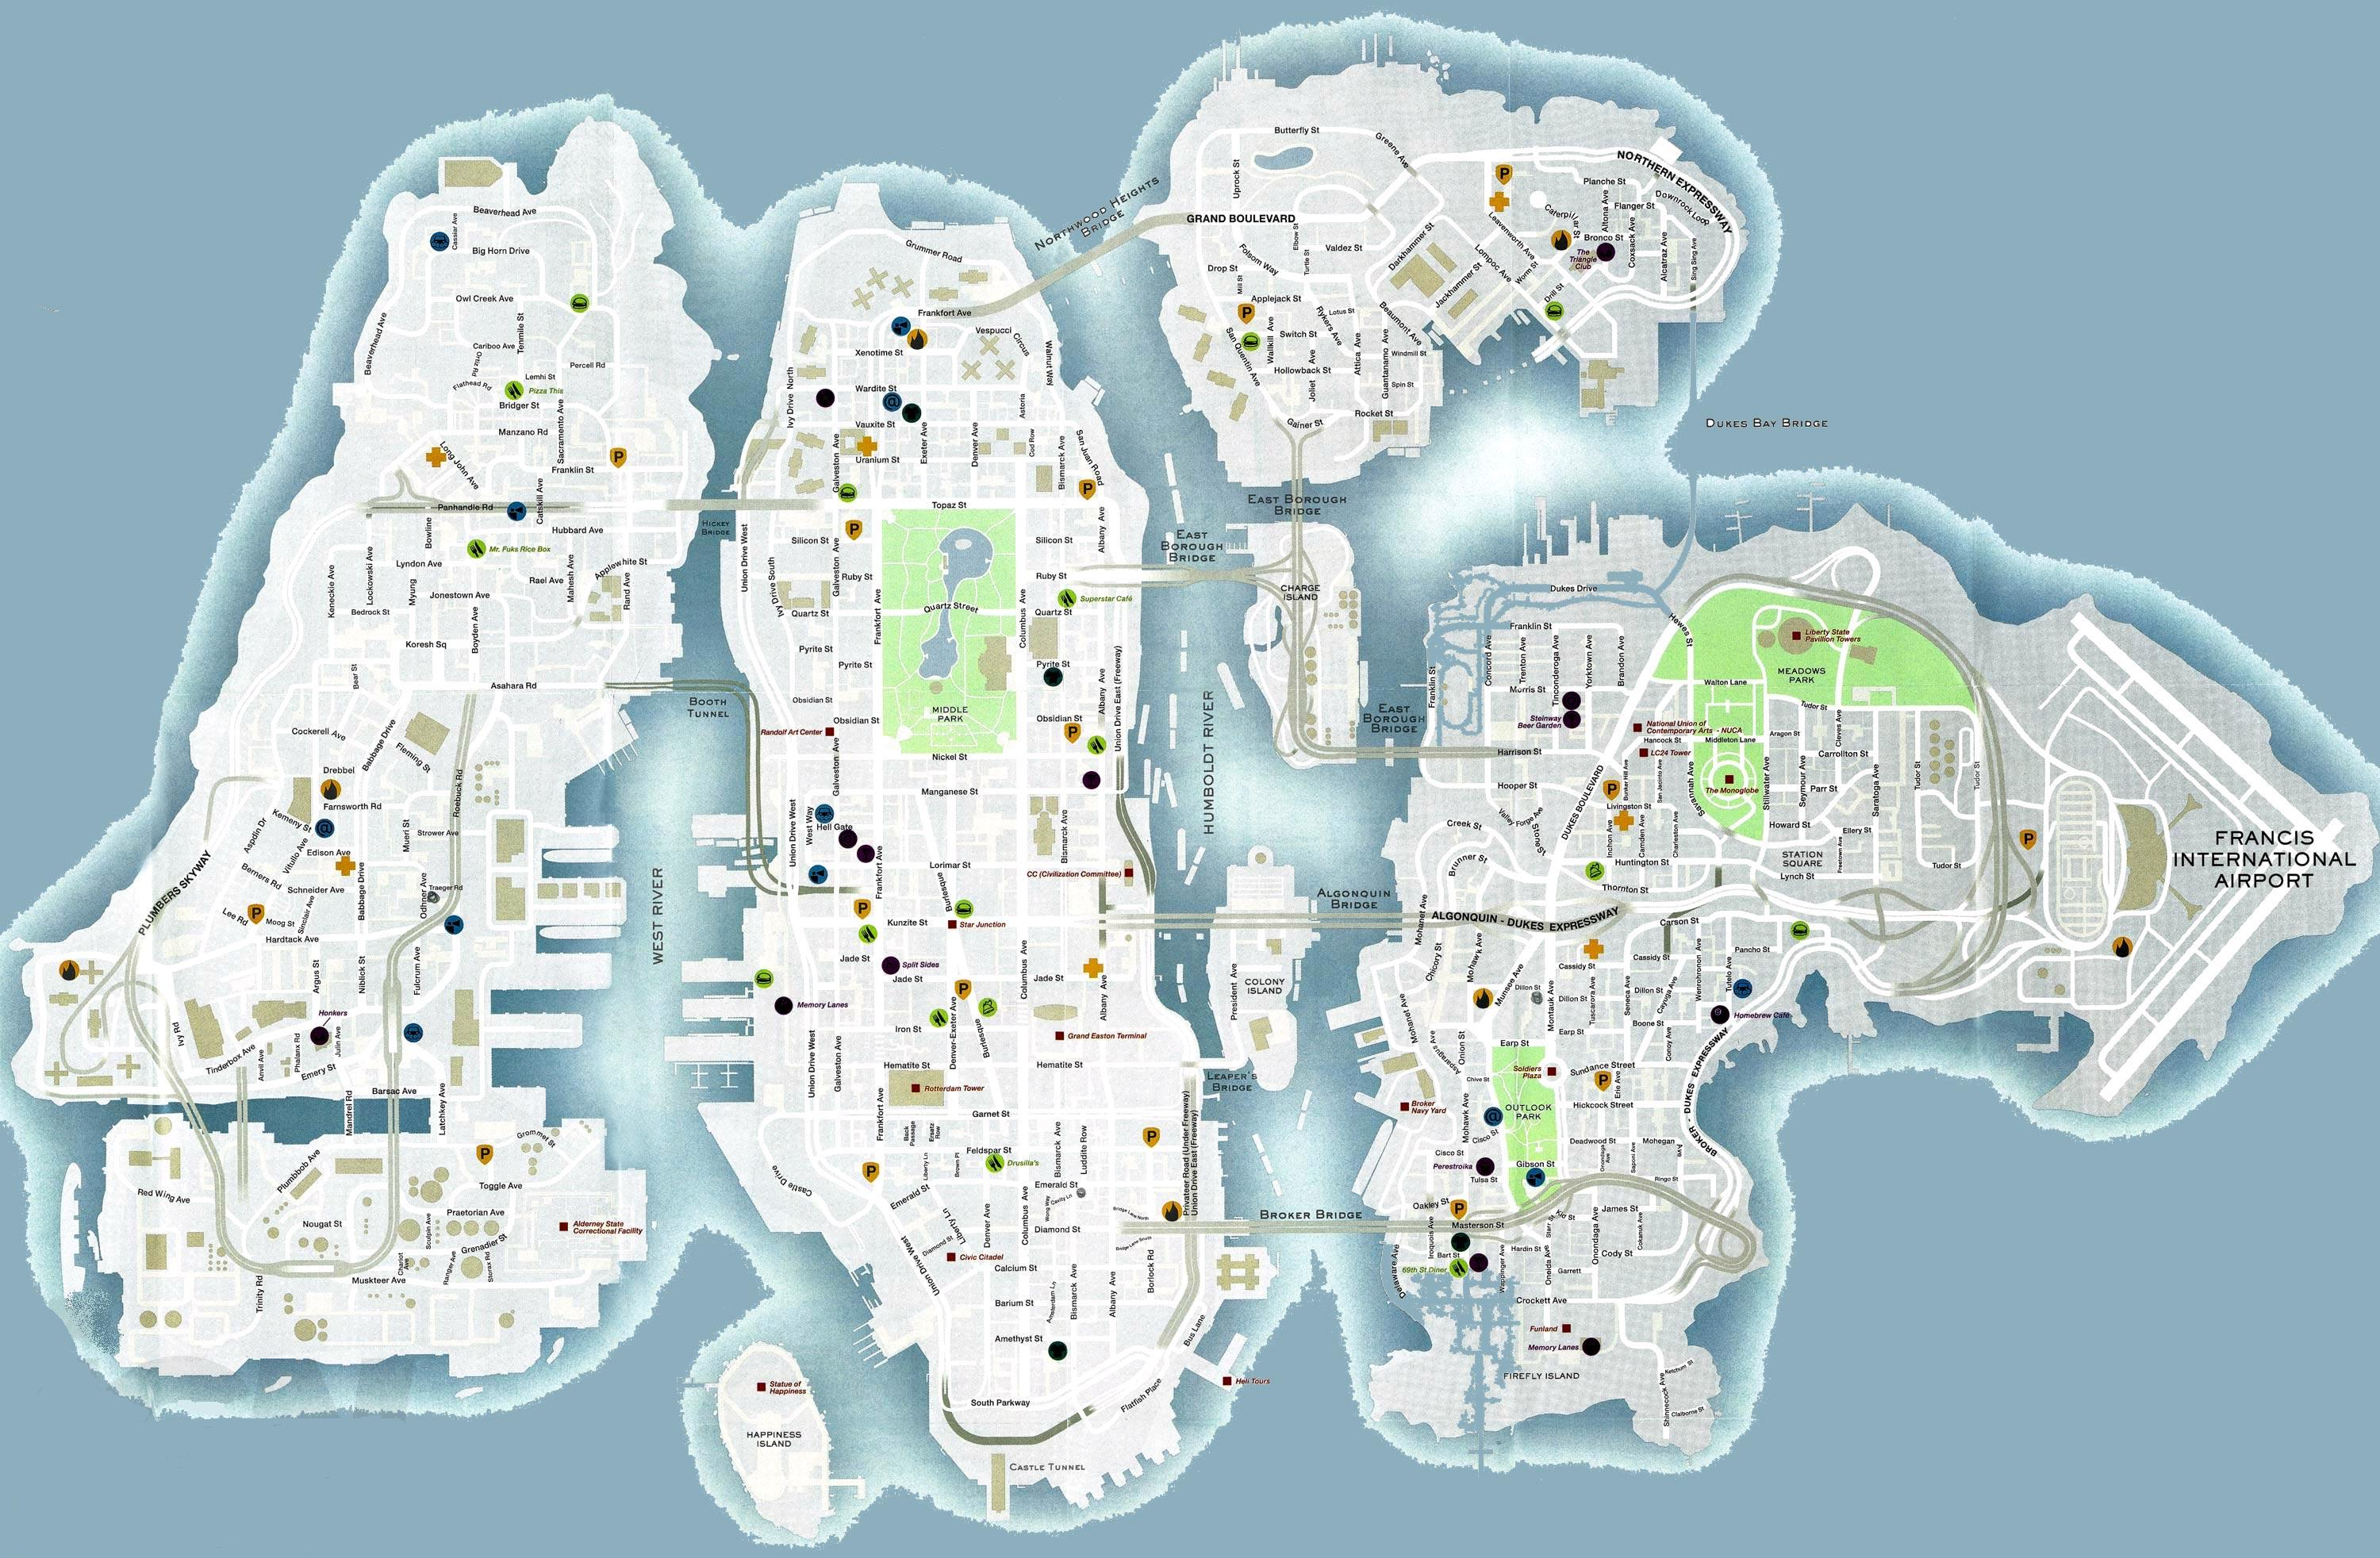 gta iv helicopter locations with Datei Gta Iv Map on Maps as well Grandtheftauto5cheatscodes likewise Gta 5 Rare Cars Free Customised Vapid Dominator Sentinel Xs Spawn Locations Revealed 1482637 additionally Under the Bridge as well Volatus.